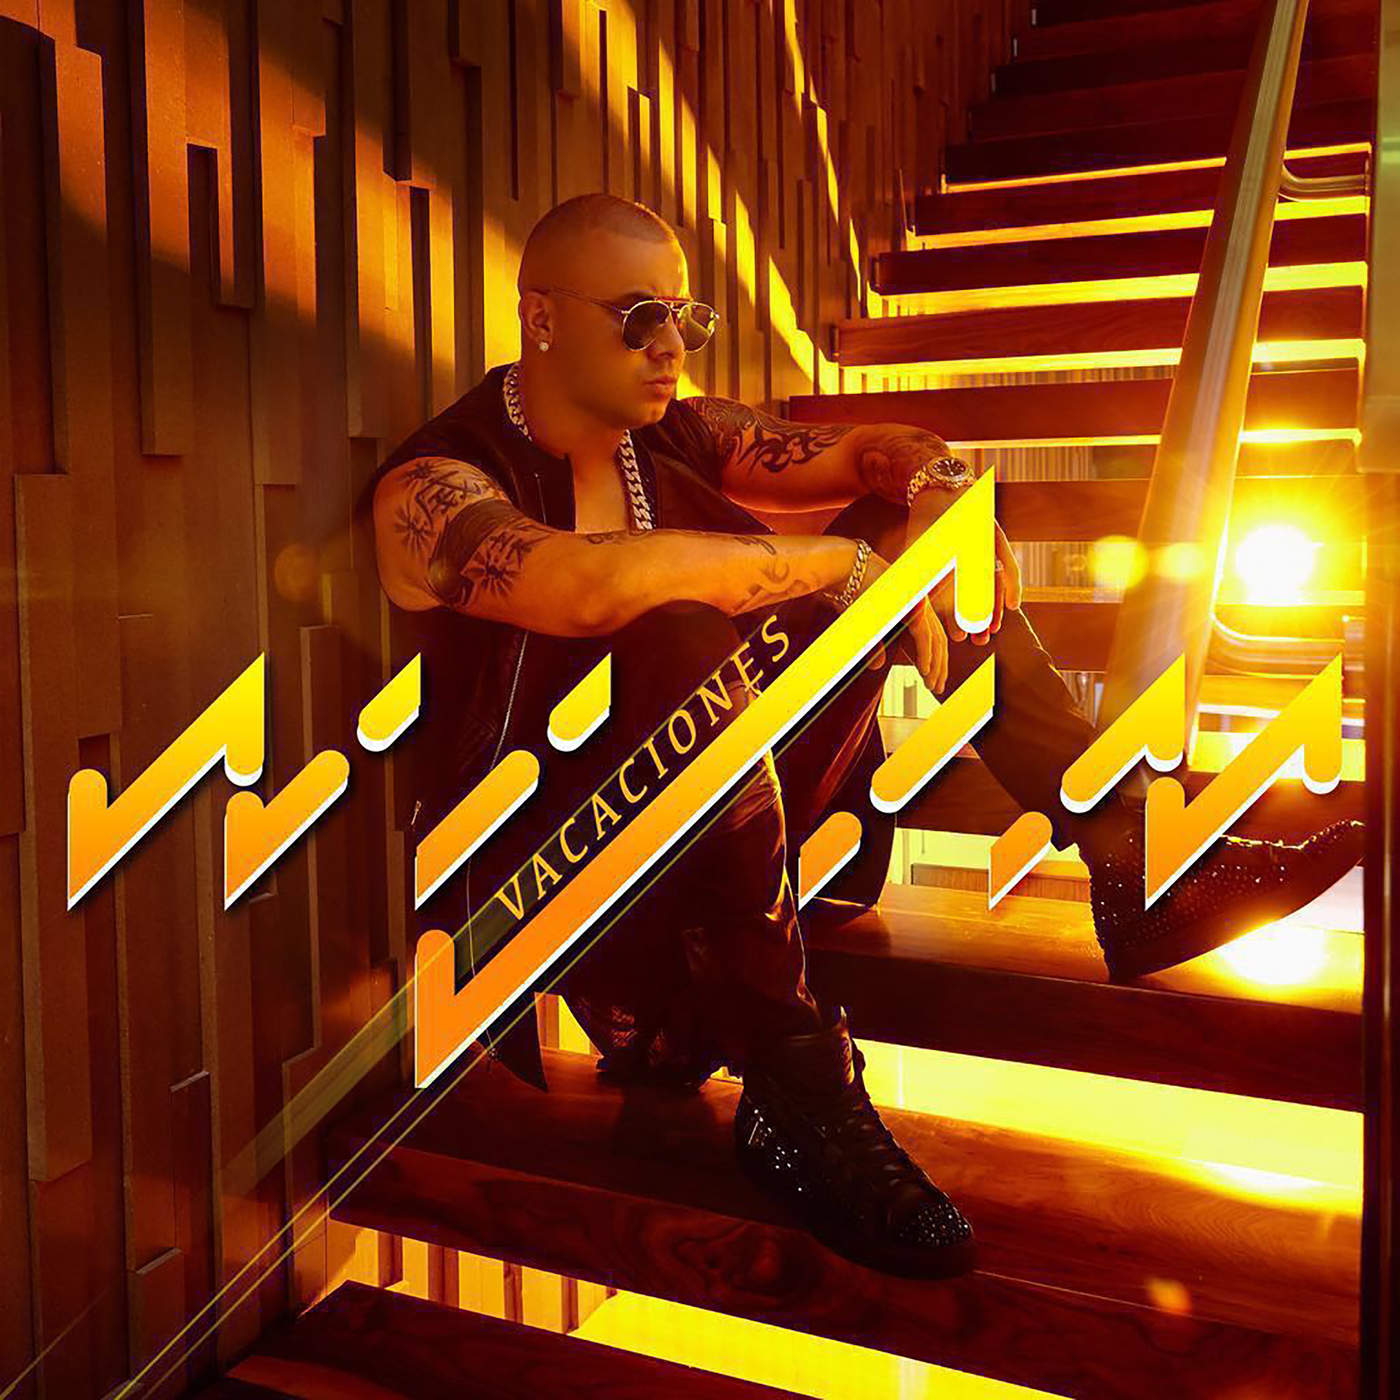 Wisin - Vacaciones - Single